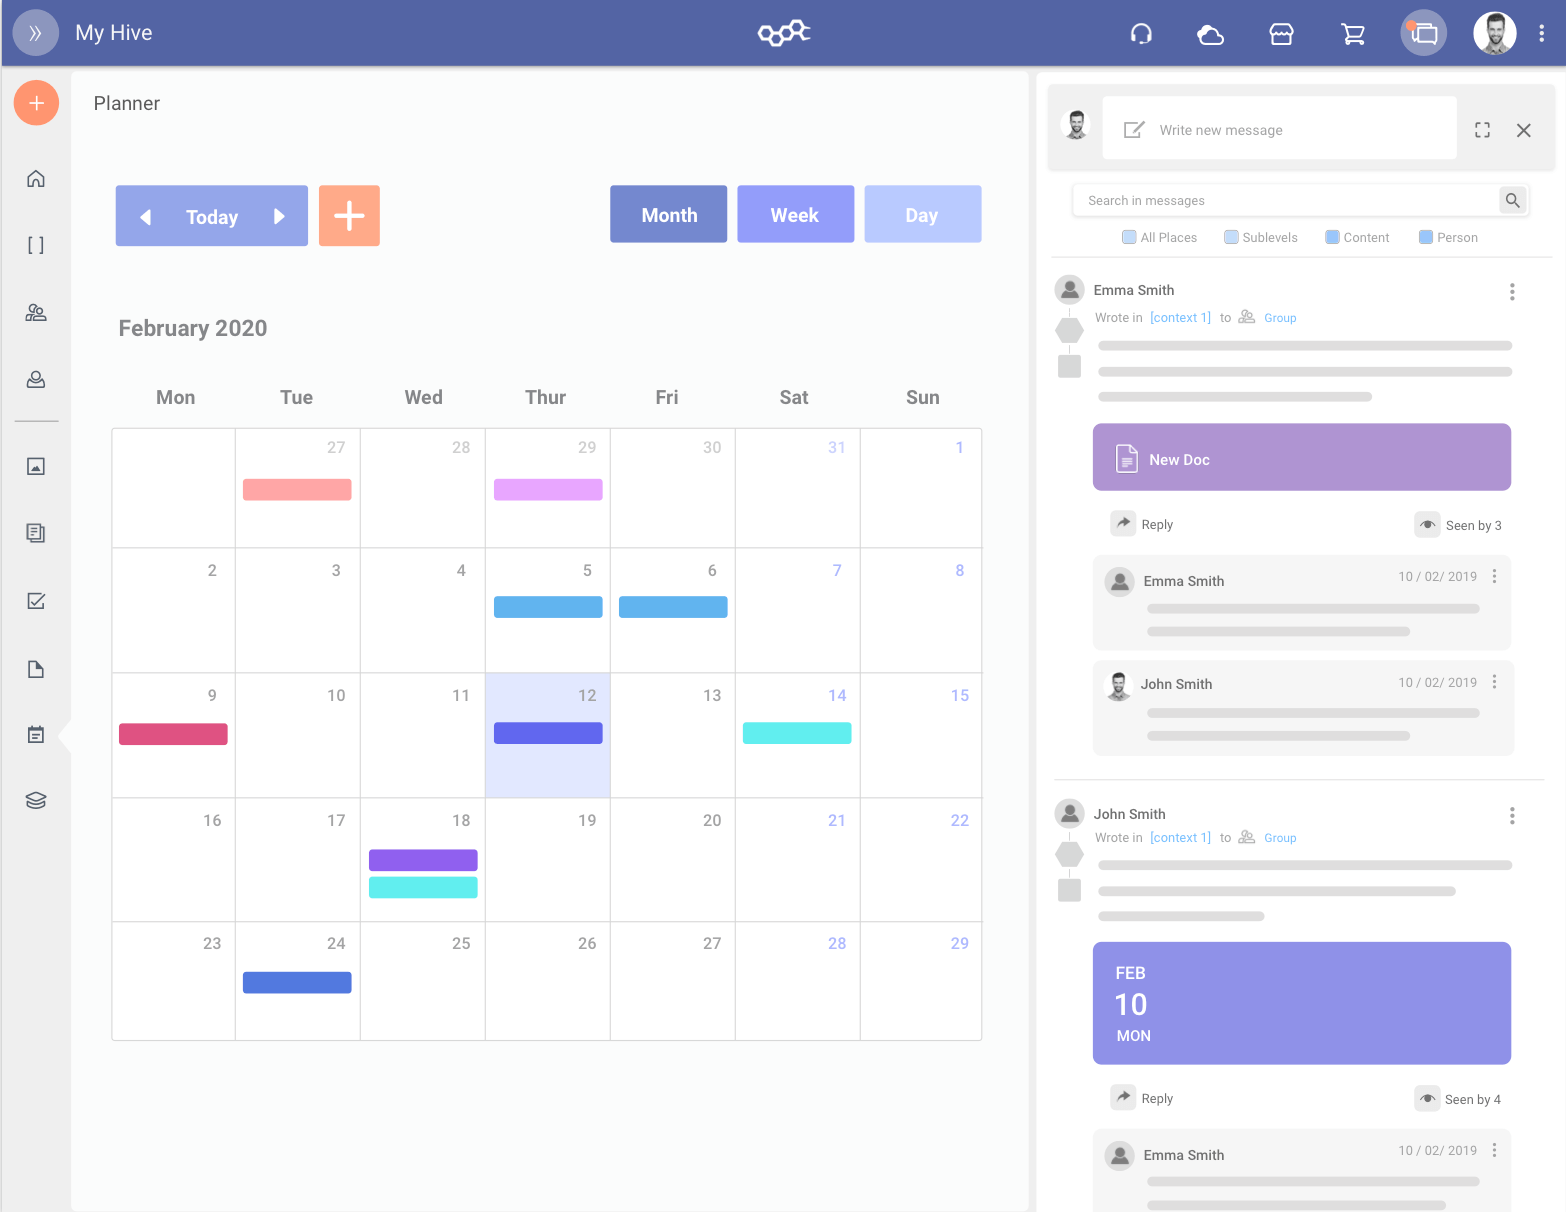 Organise your activities and tasks in the planner